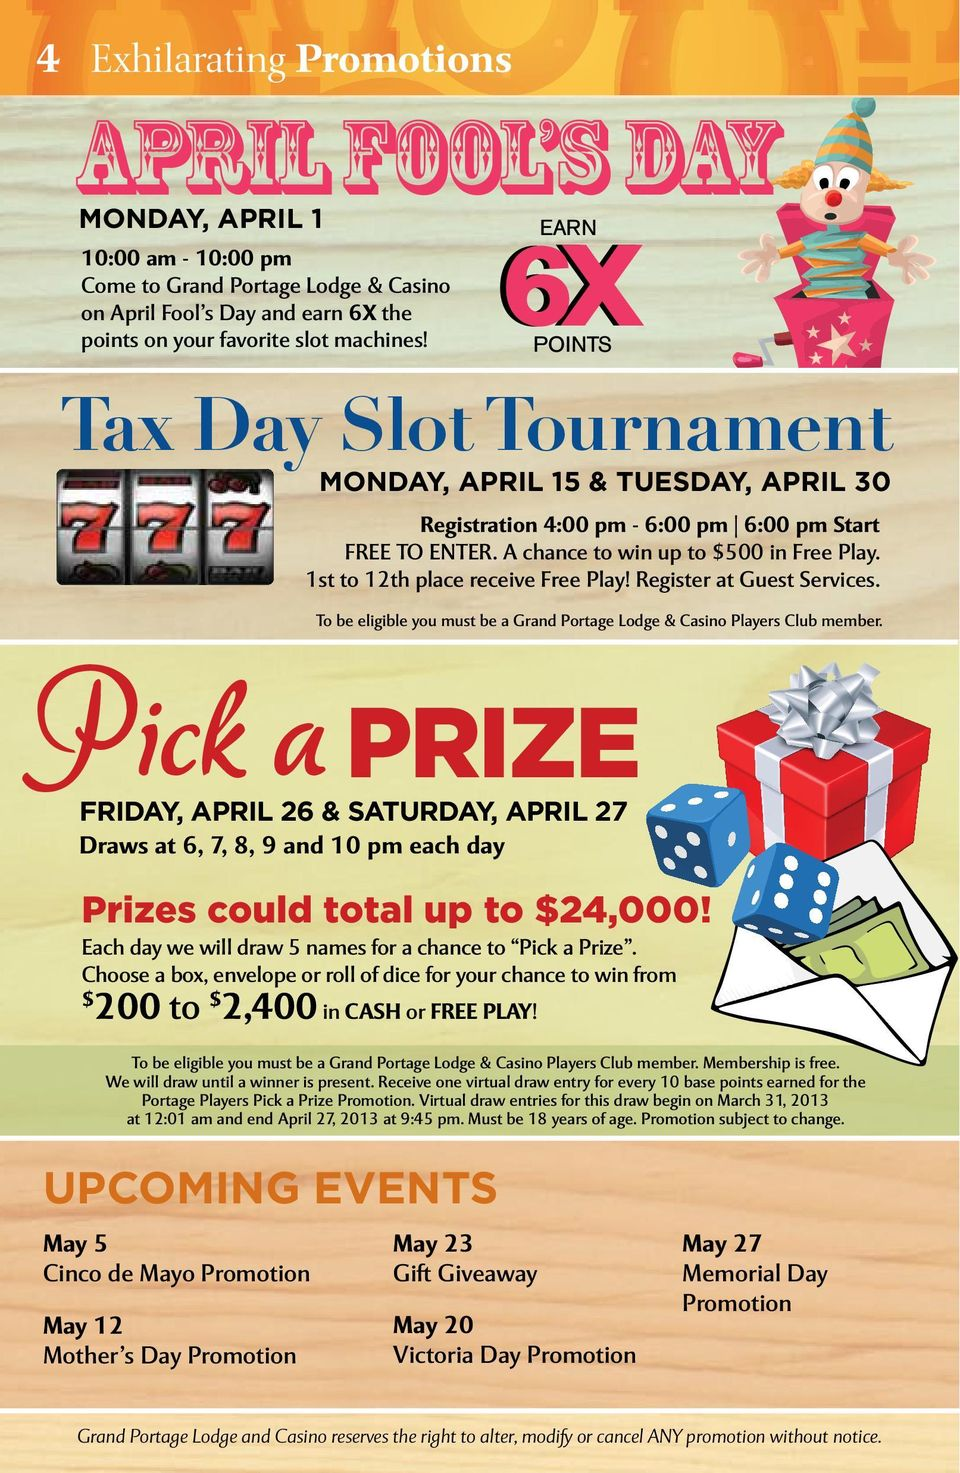 Register at Guest Services. To be eligible you must be a Grand Portage Lodge & Casino Players Club member.